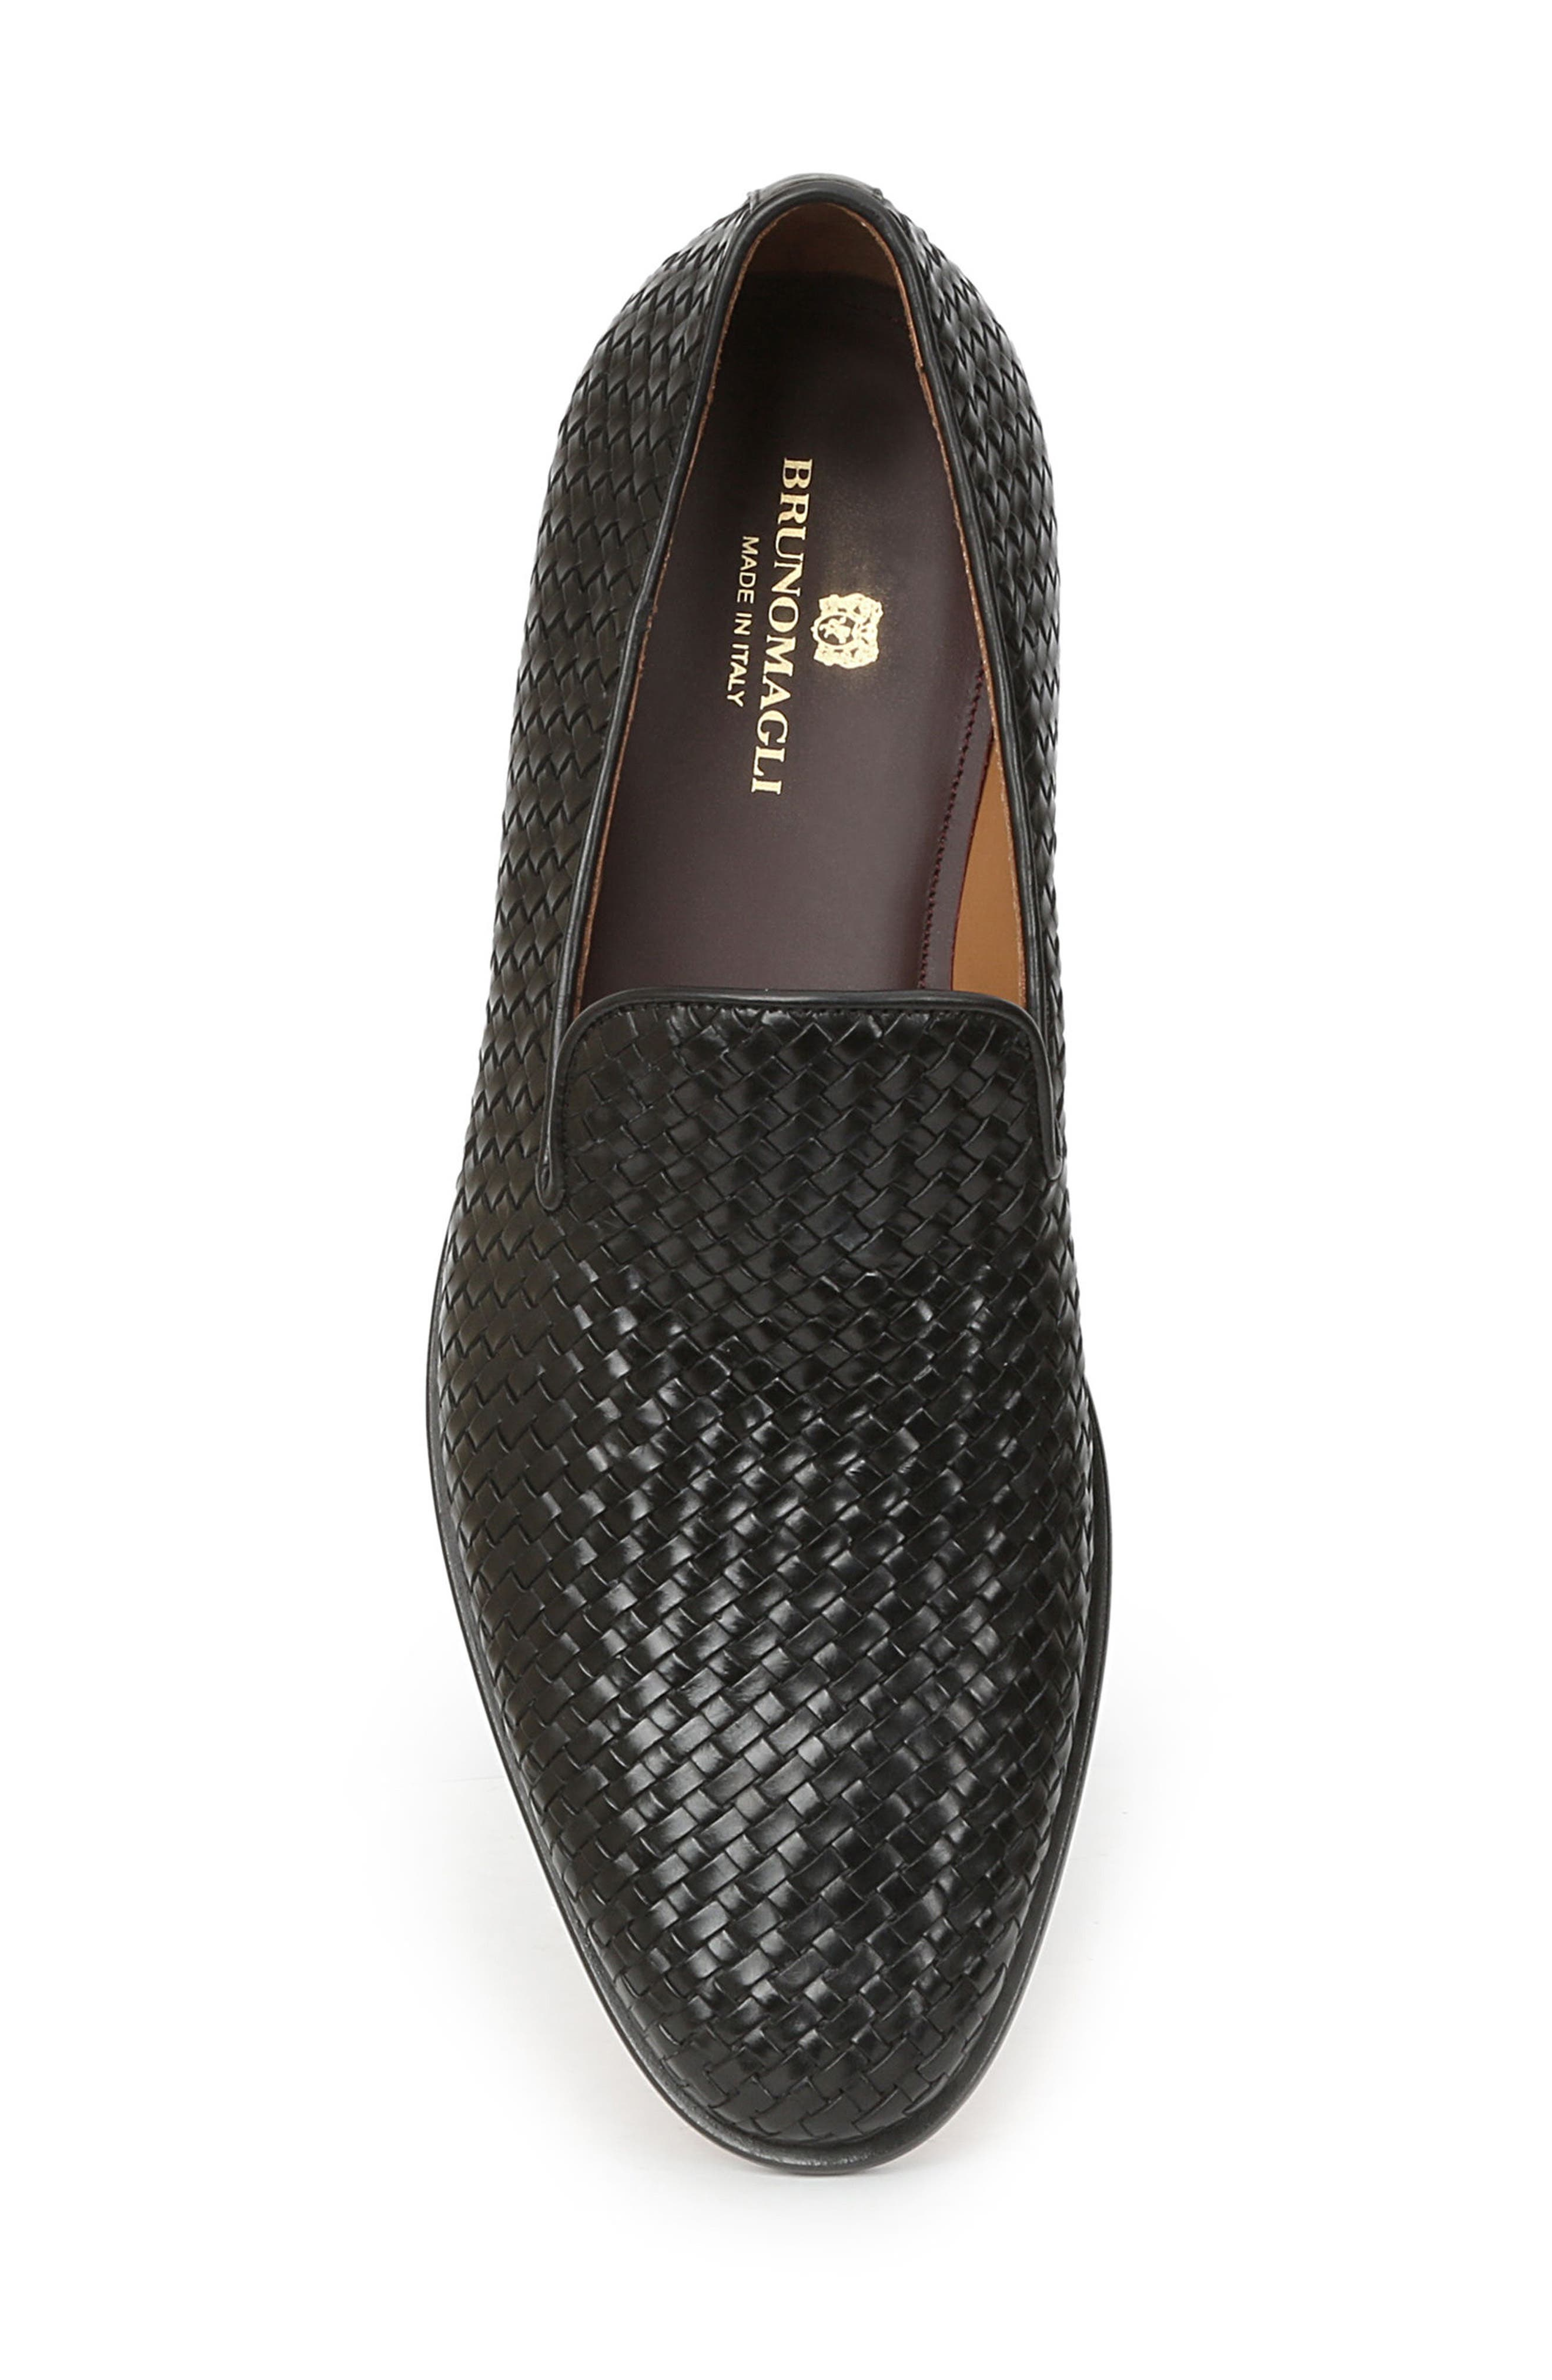 Picasso Woven Venetian Loafer,                             Alternate thumbnail 5, color,                             004